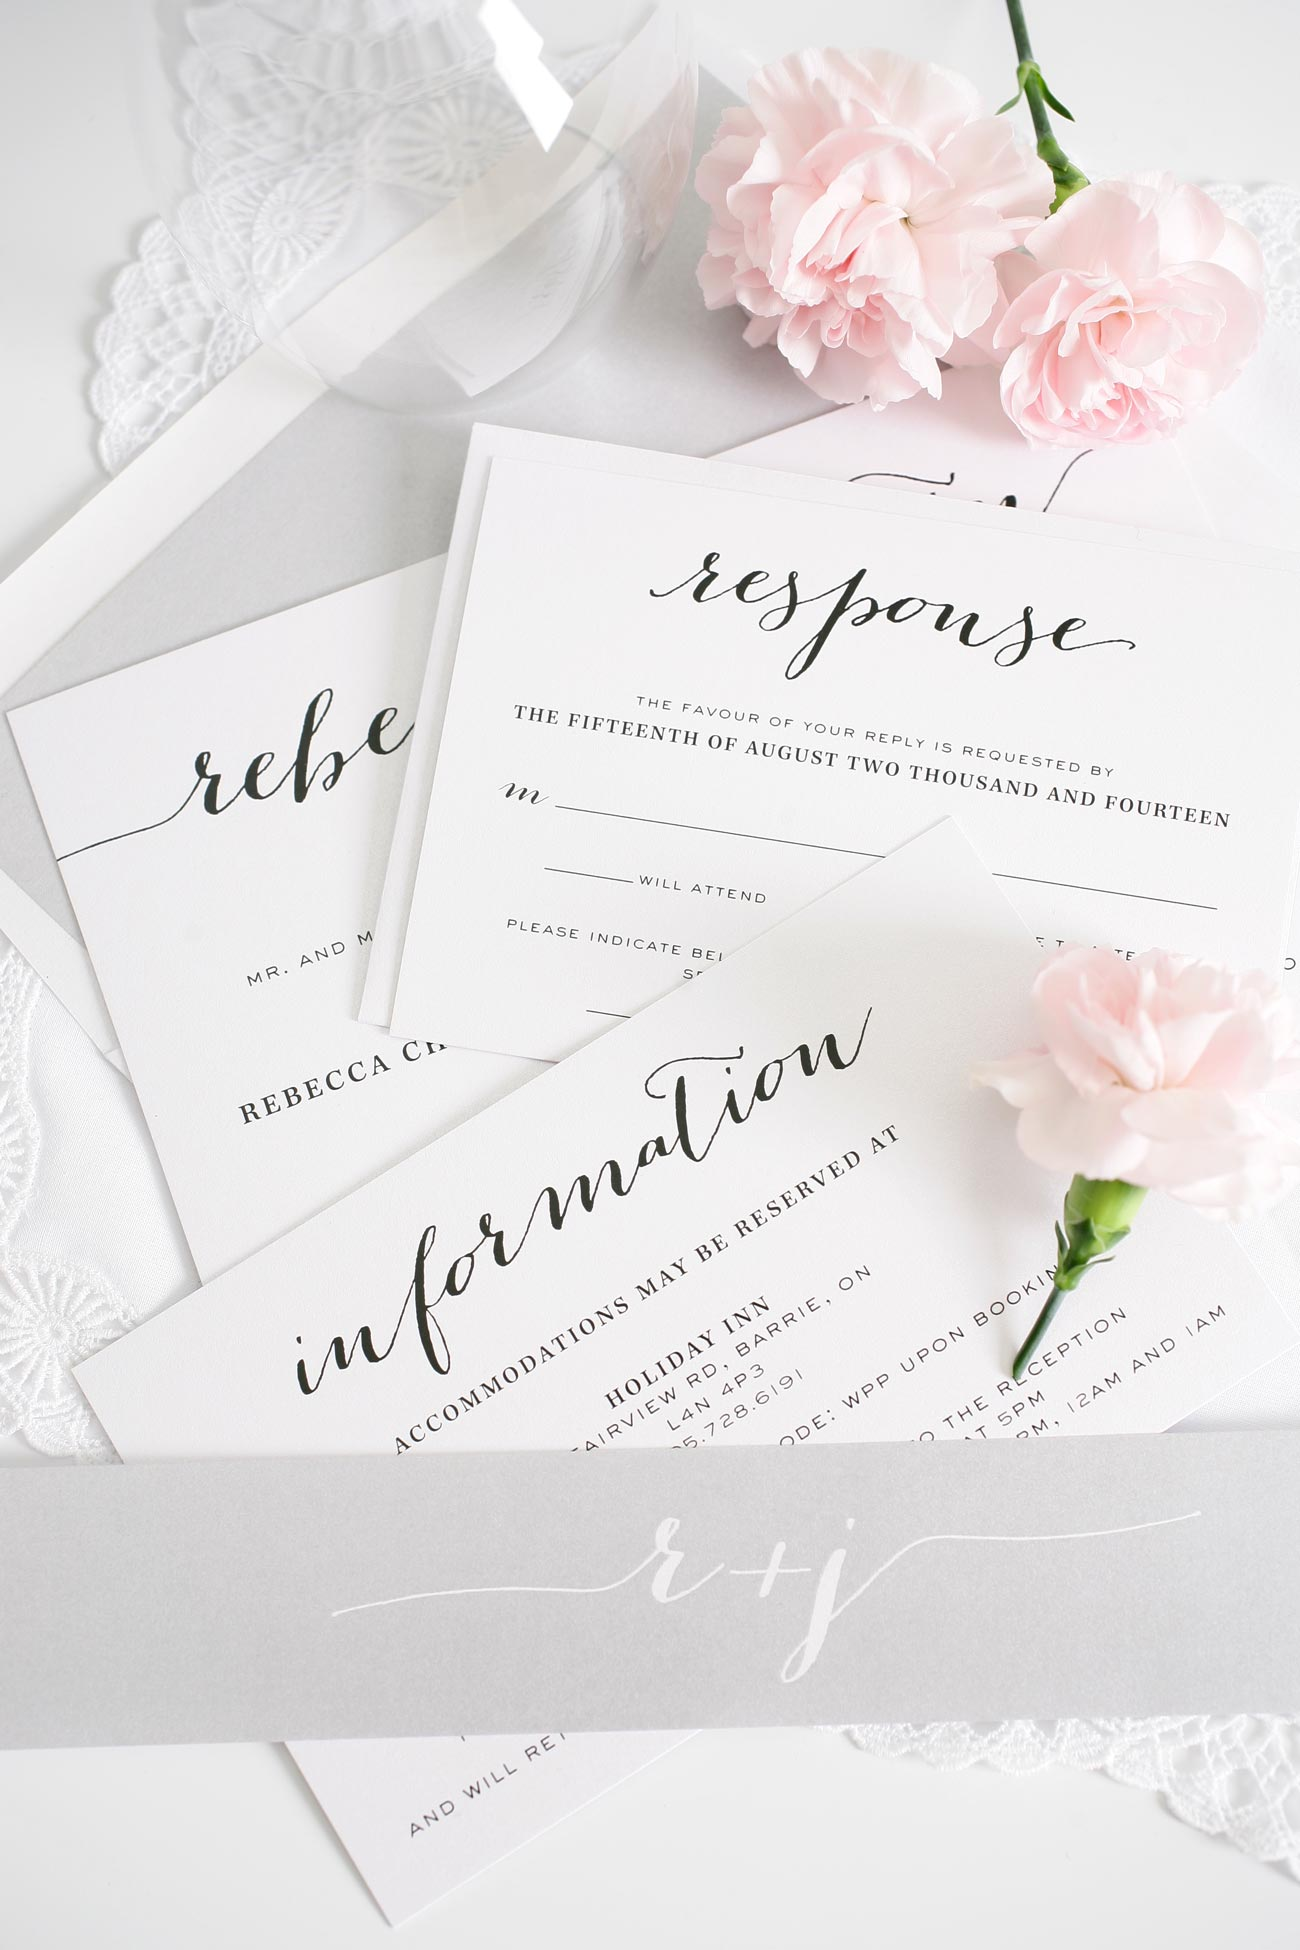 Silver wedding invitations with calligraphy font